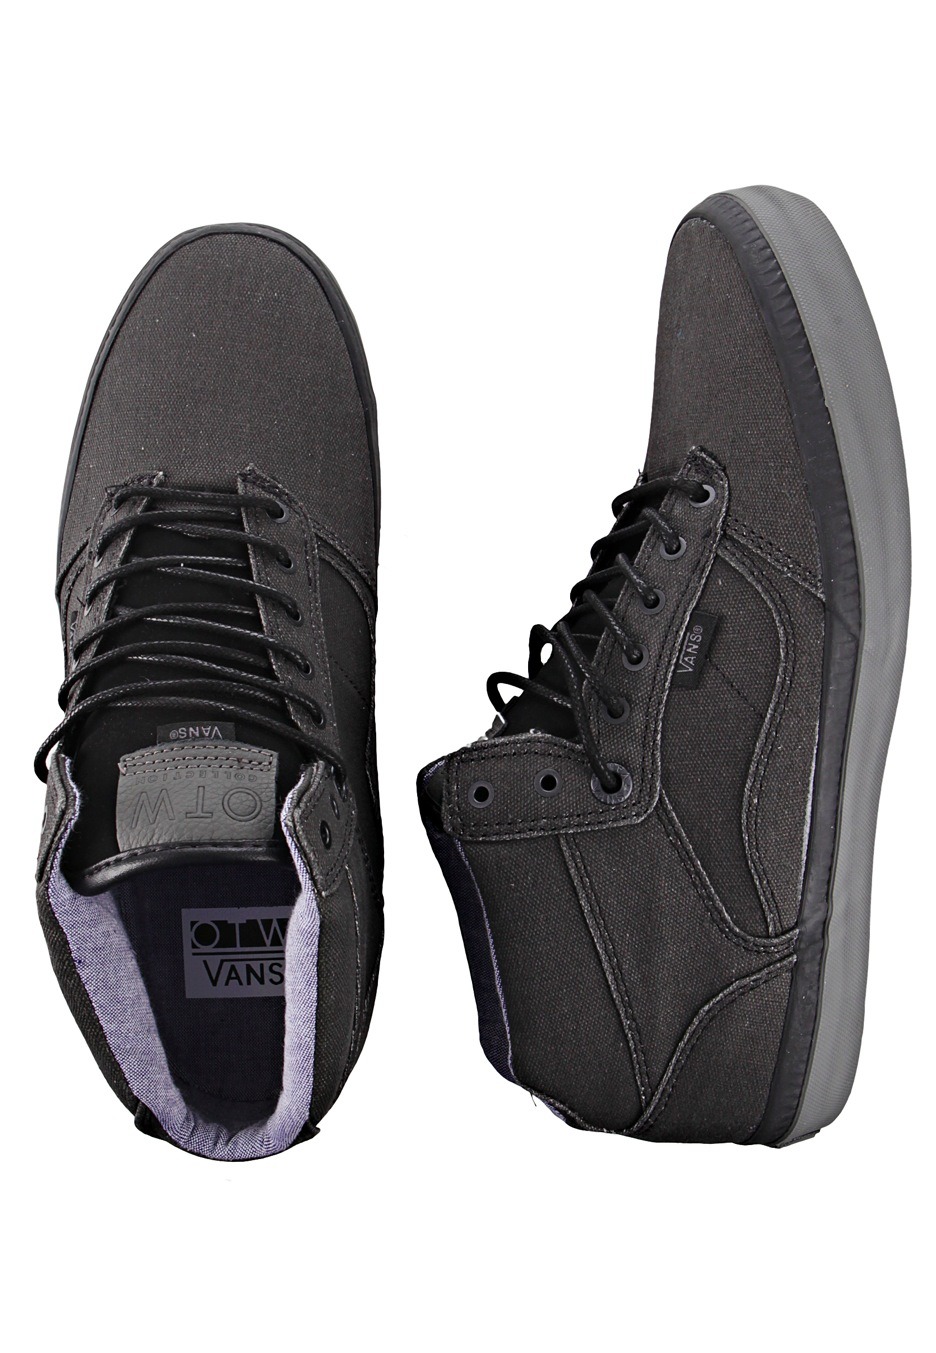 6186e3d4db Vans - Bedford Black Pewter - Shoes - Impericon.com Worldwide